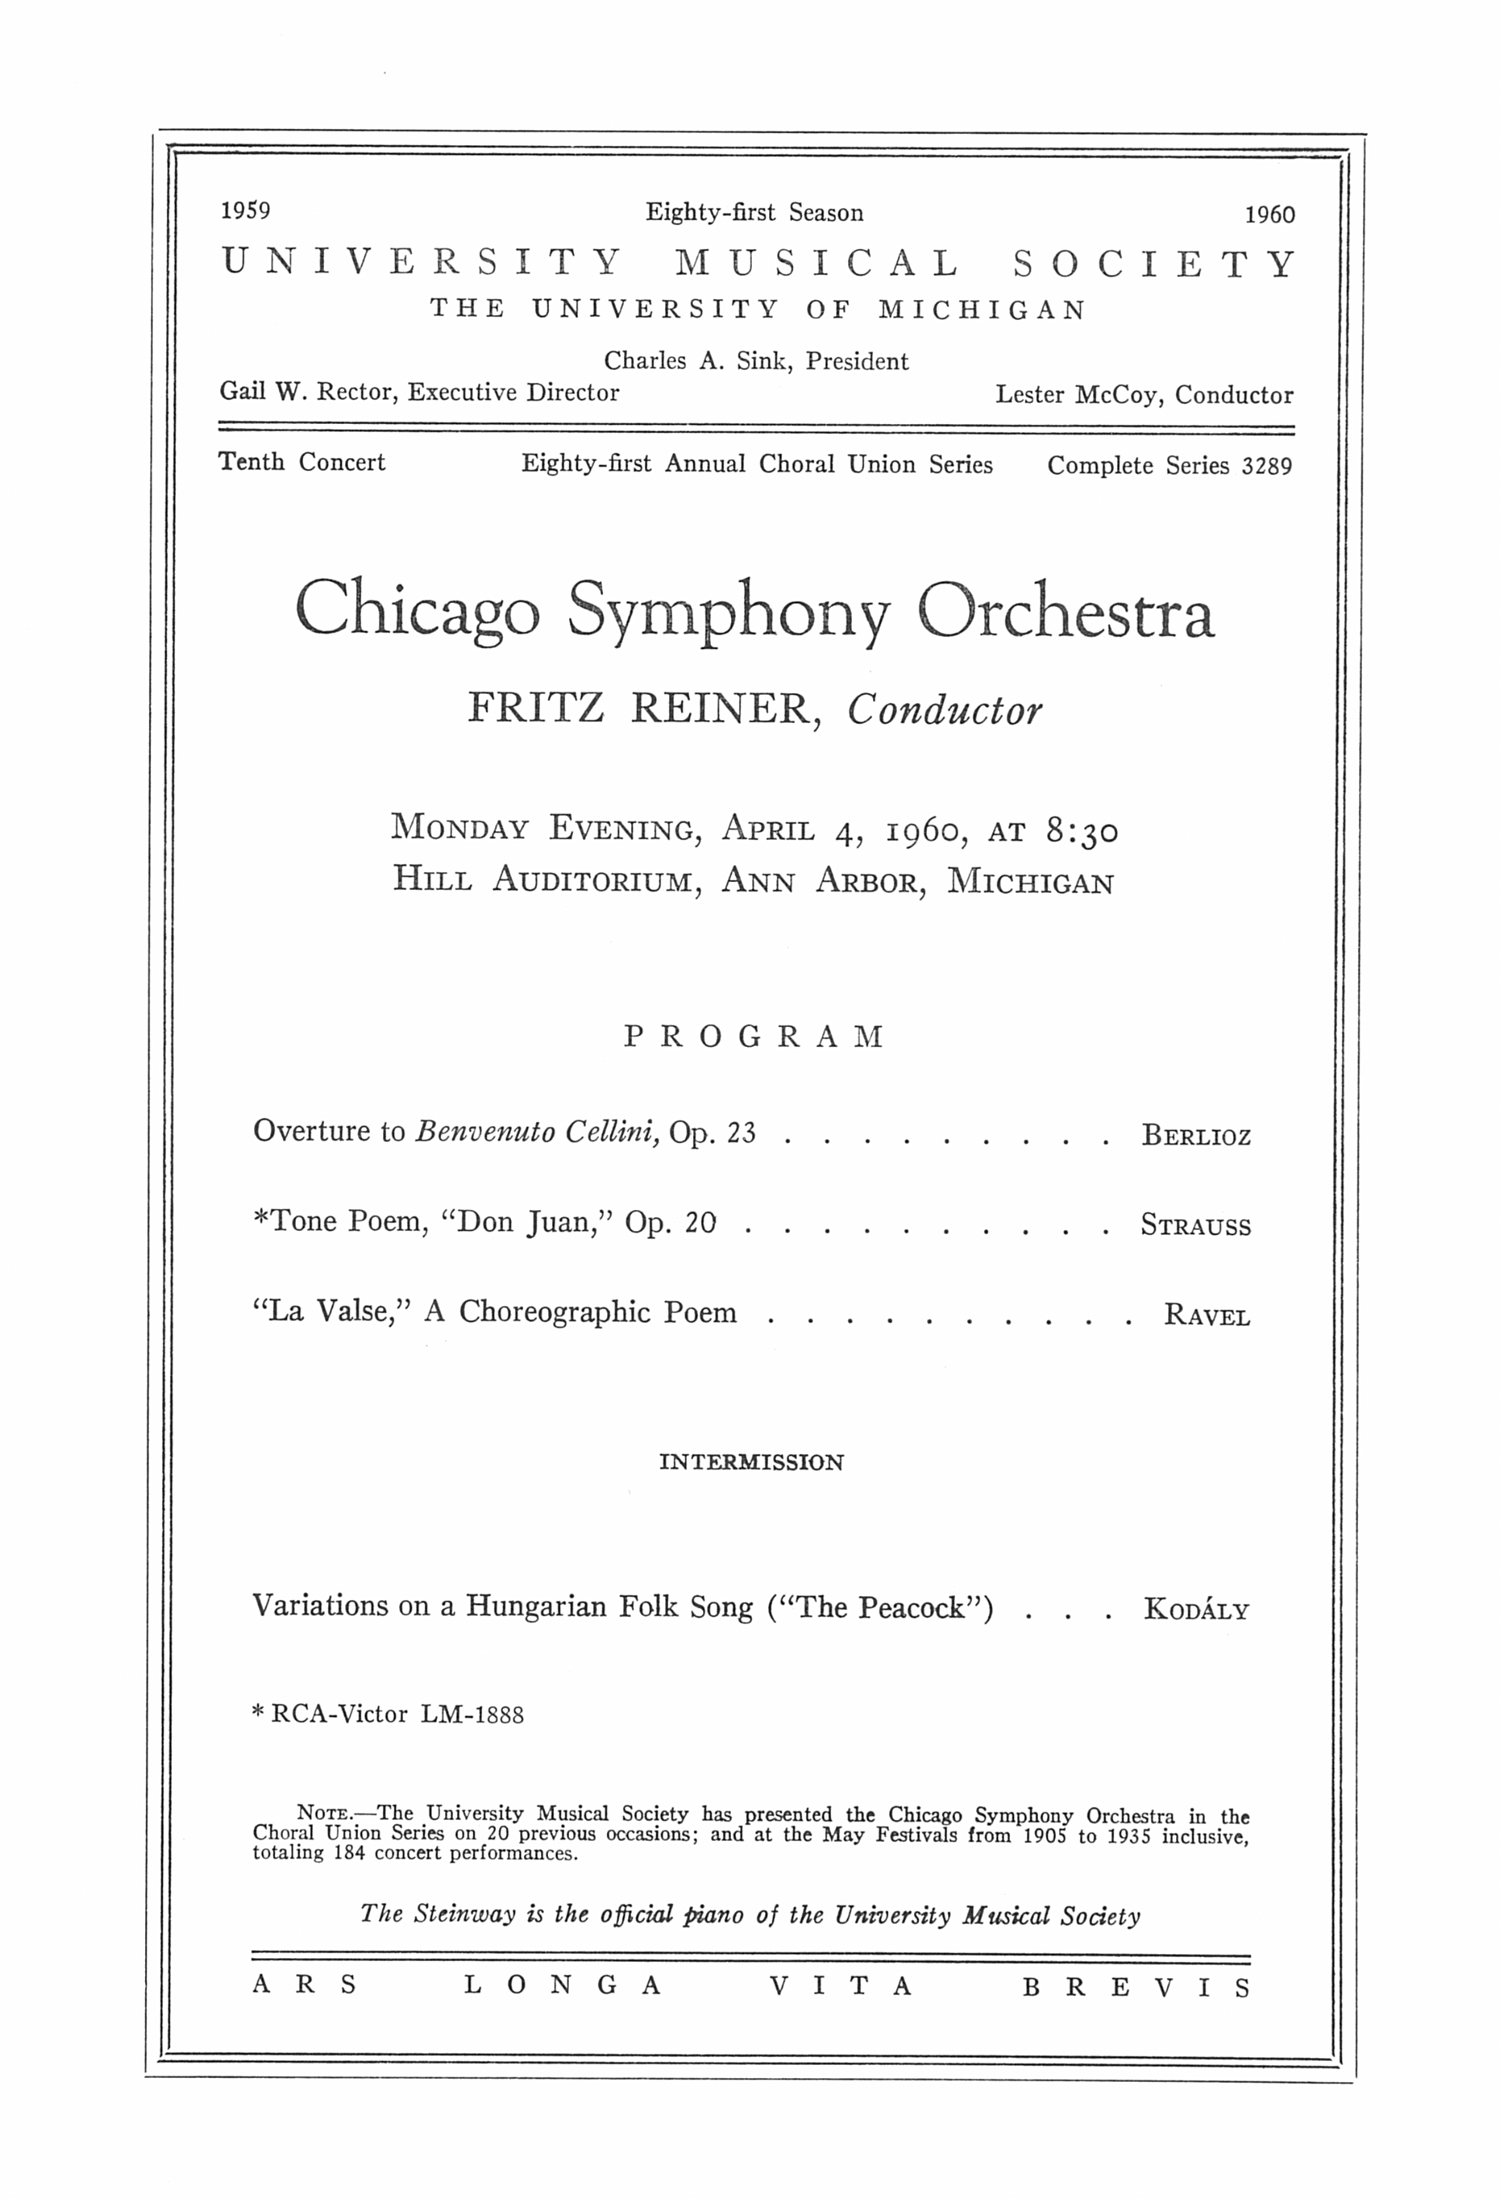 UMS Concert Program, April 4, 1960: Chicago Symphony Orchestra --  image